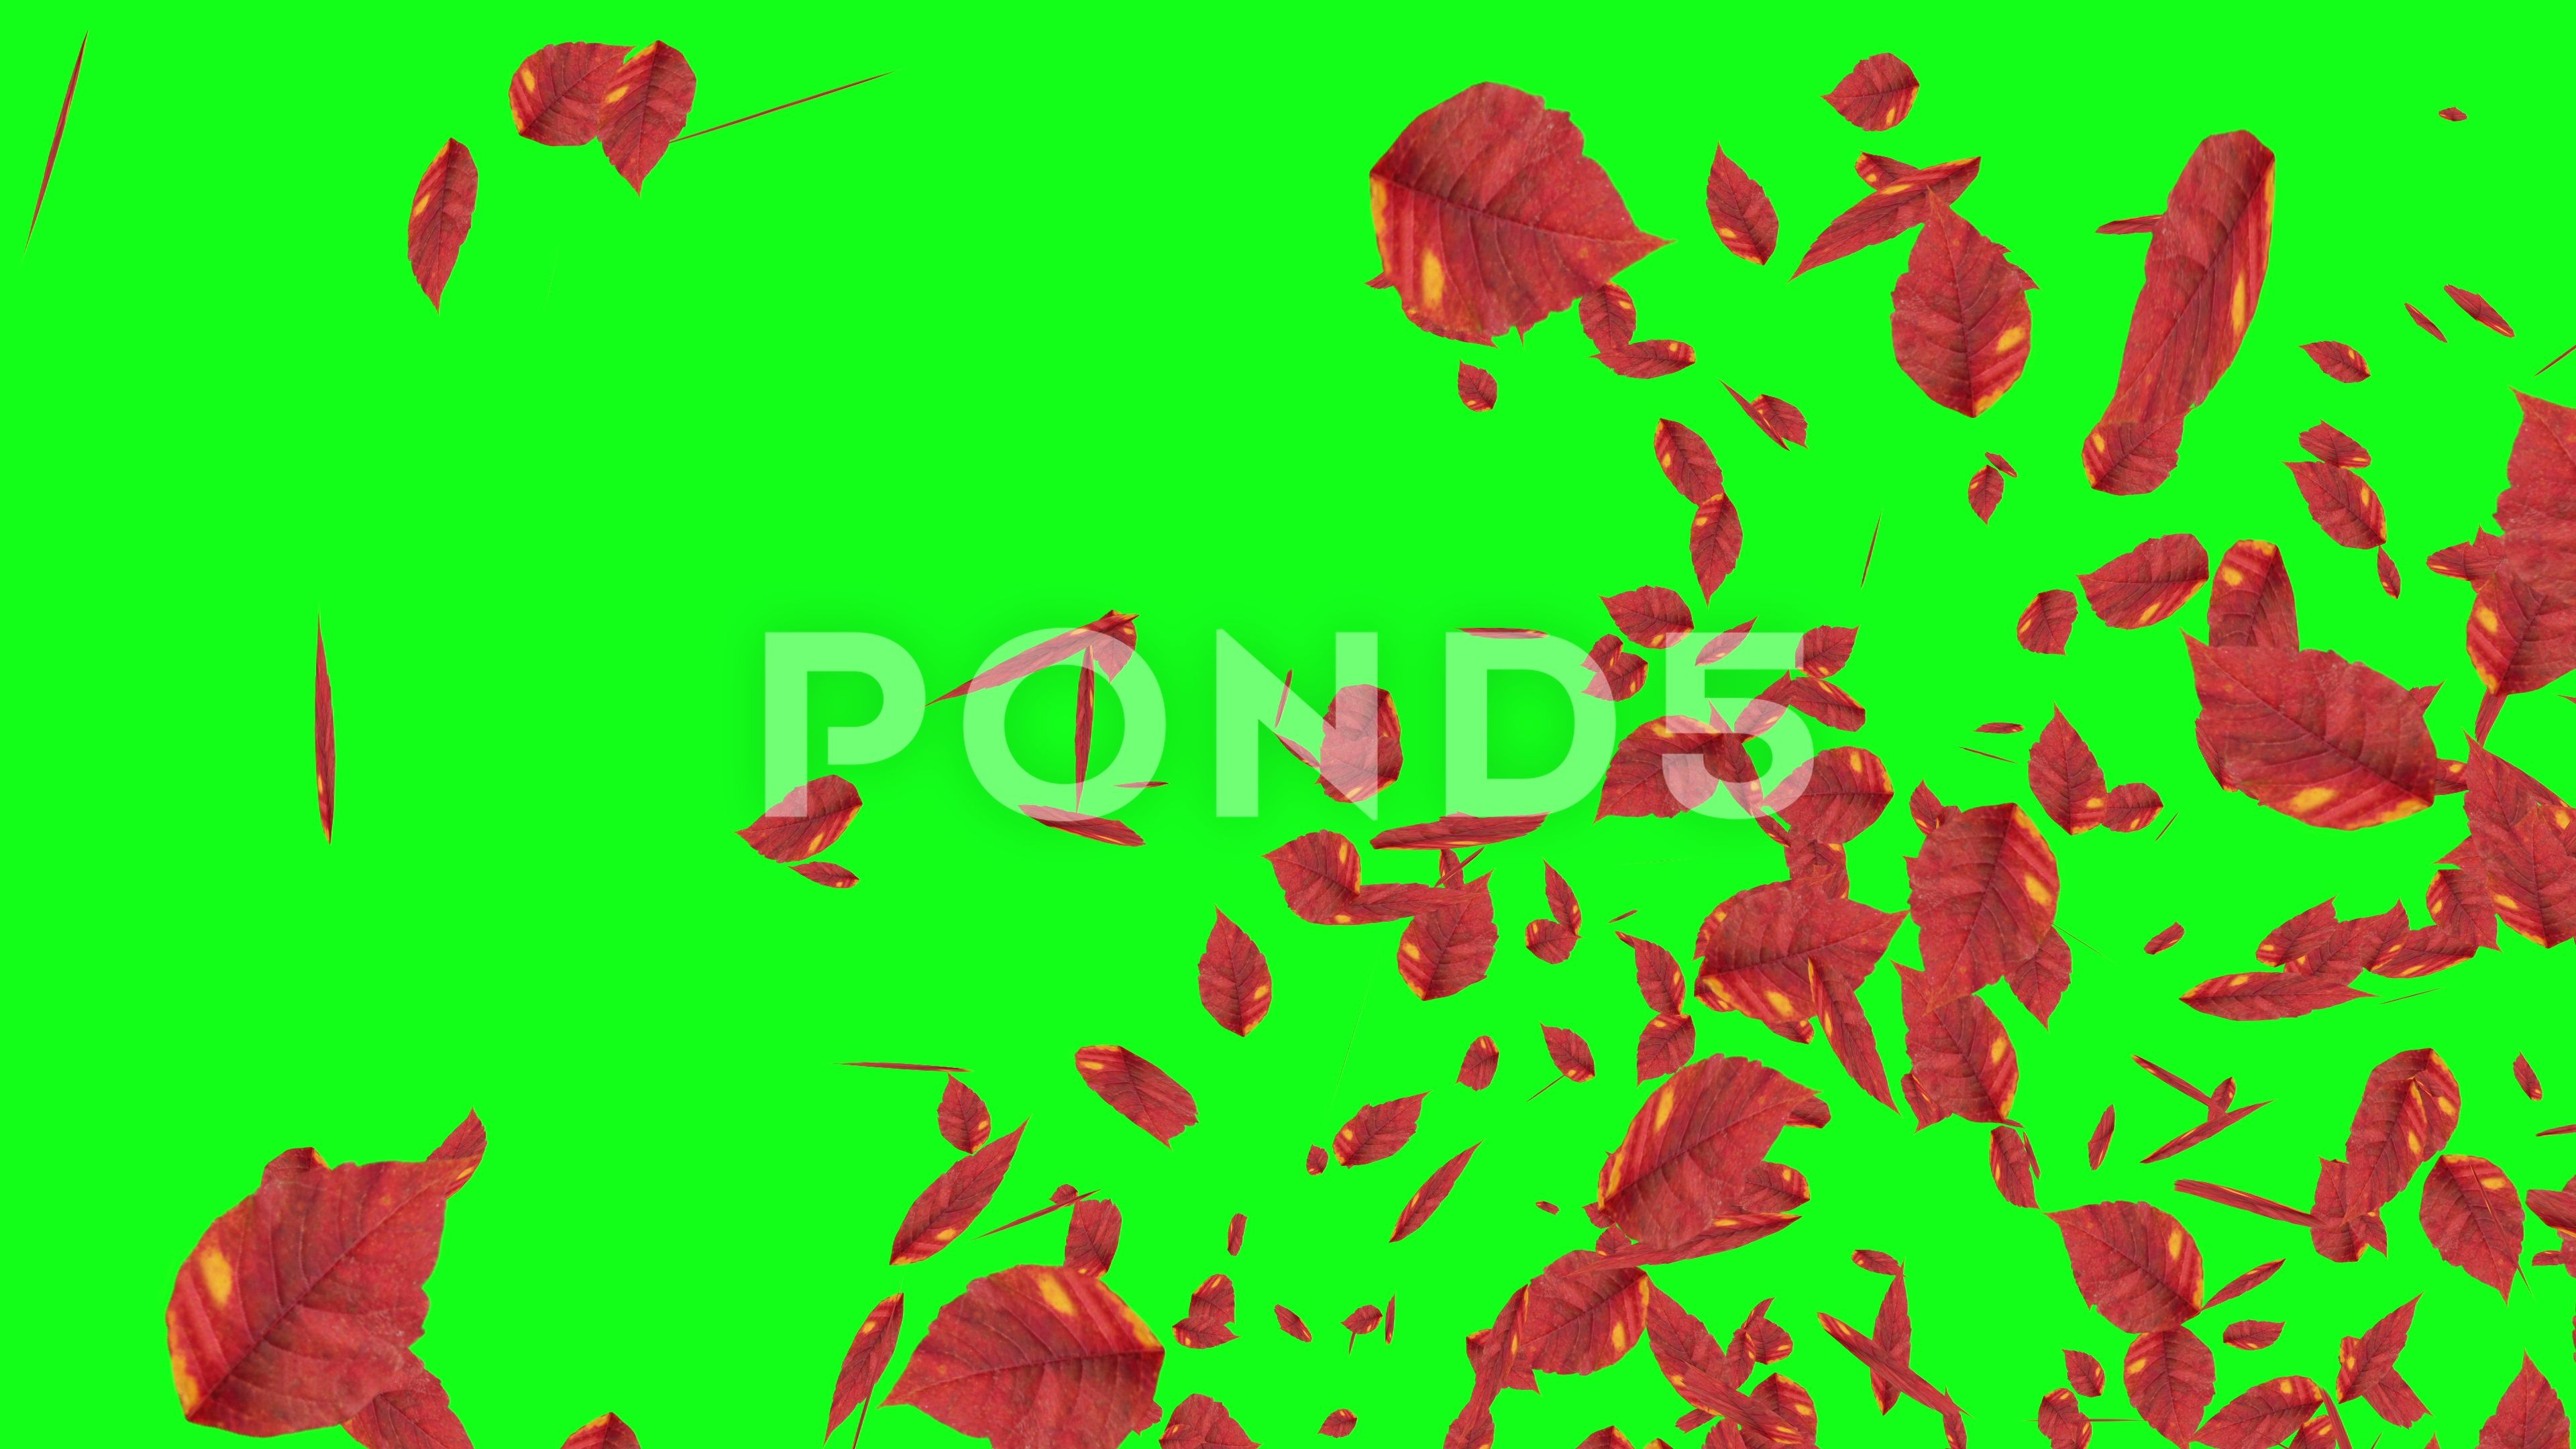 Explosive Autumn Falling Leaves Green Screen Chroma Key Editable Background Stock Footage Ad Leaves Green Screen Expl Chroma Key Greenscreen Autumn Leaves